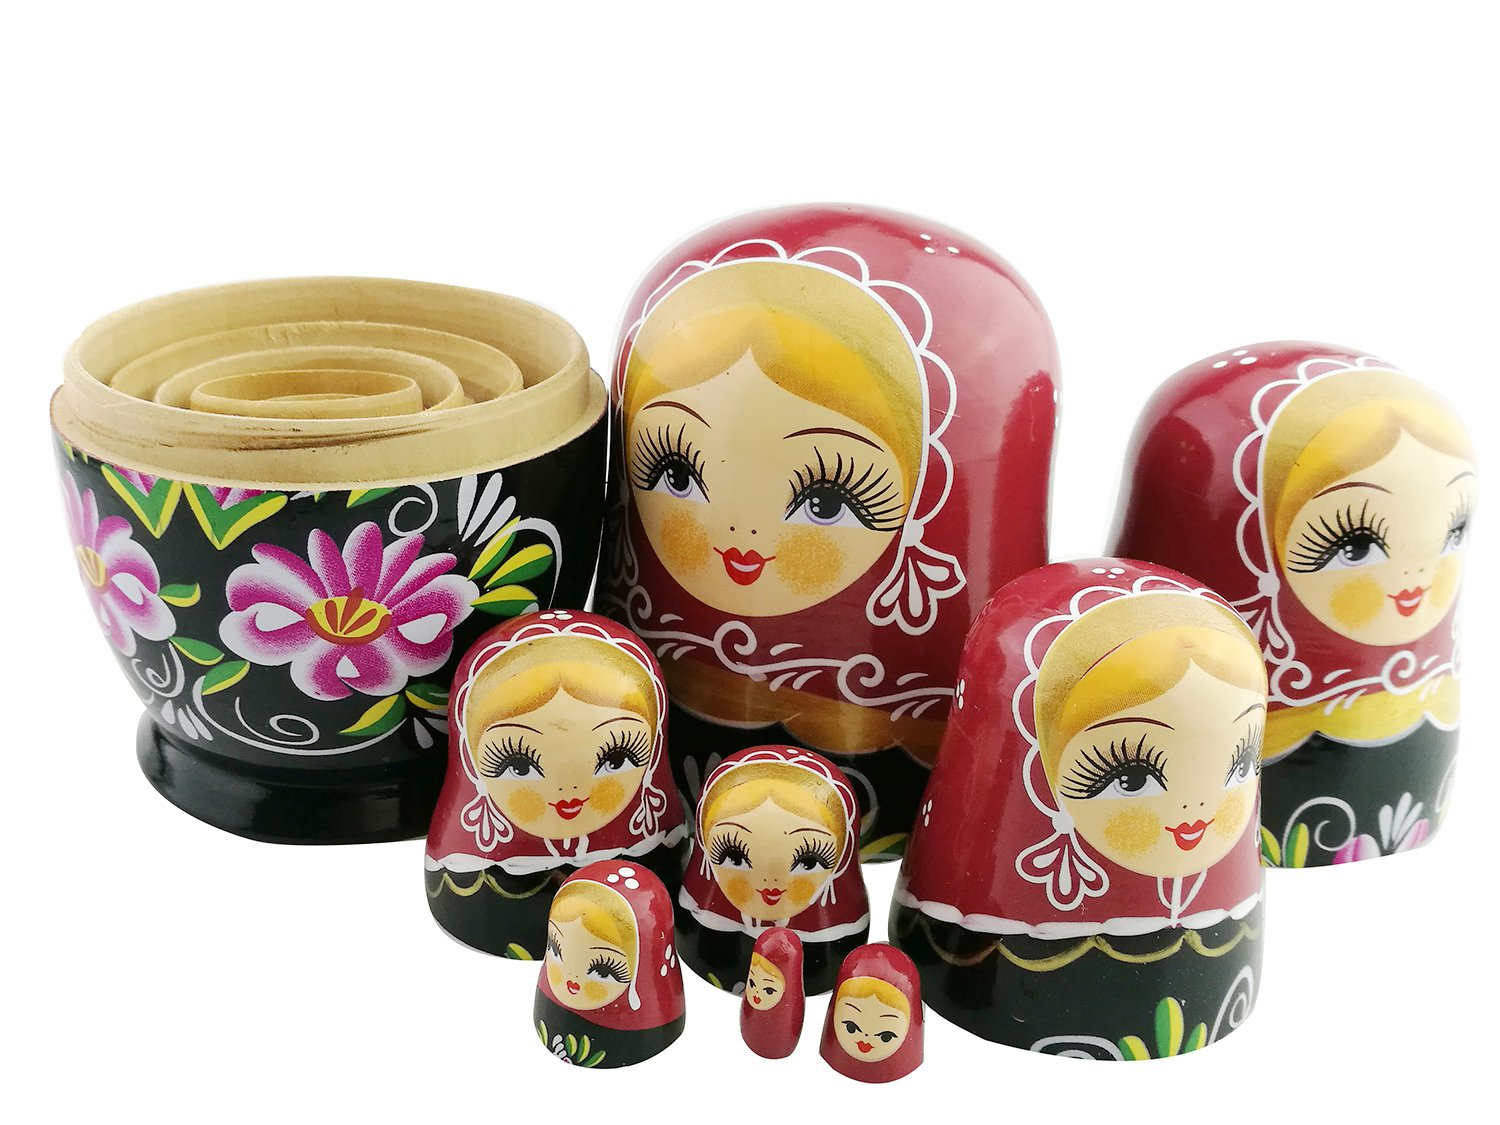 Unigift Cute Red and Black Blonde Little Girl with Pink Flower Handmade Wooden Russian Nesting Dolls Matryoshka Dolls Set 8 Pieces for Kids Toy Home Decoration